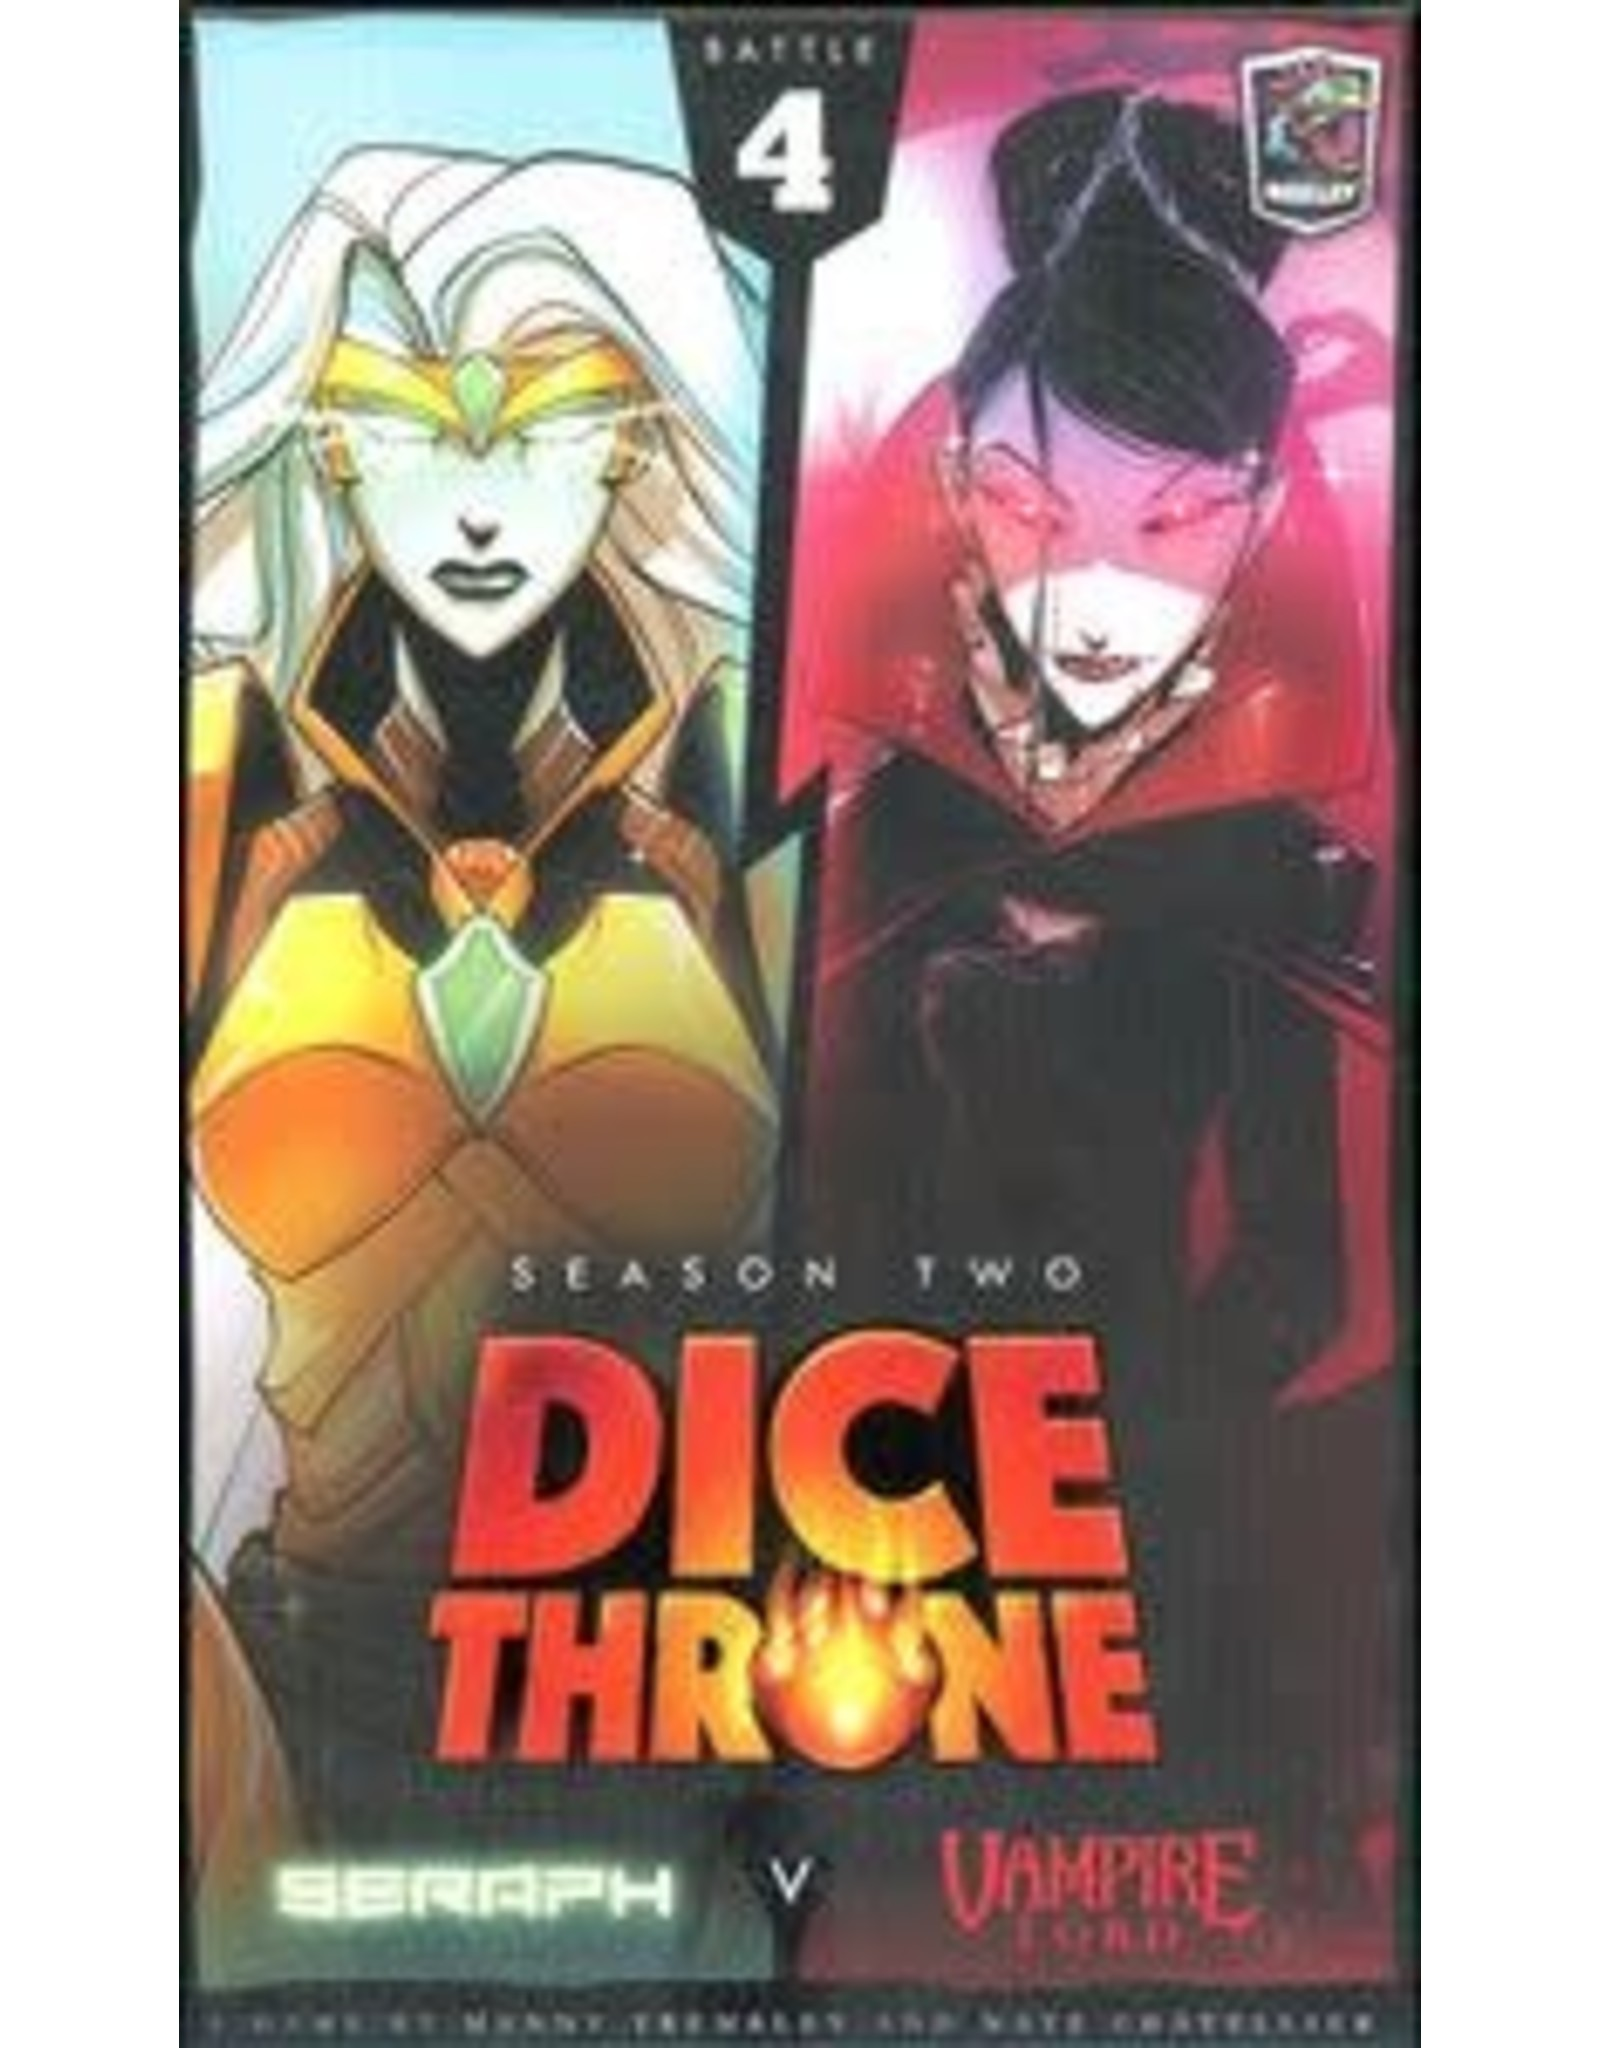 Dice Throne Season Two: Seraph vs. Vampire Lord Expansion